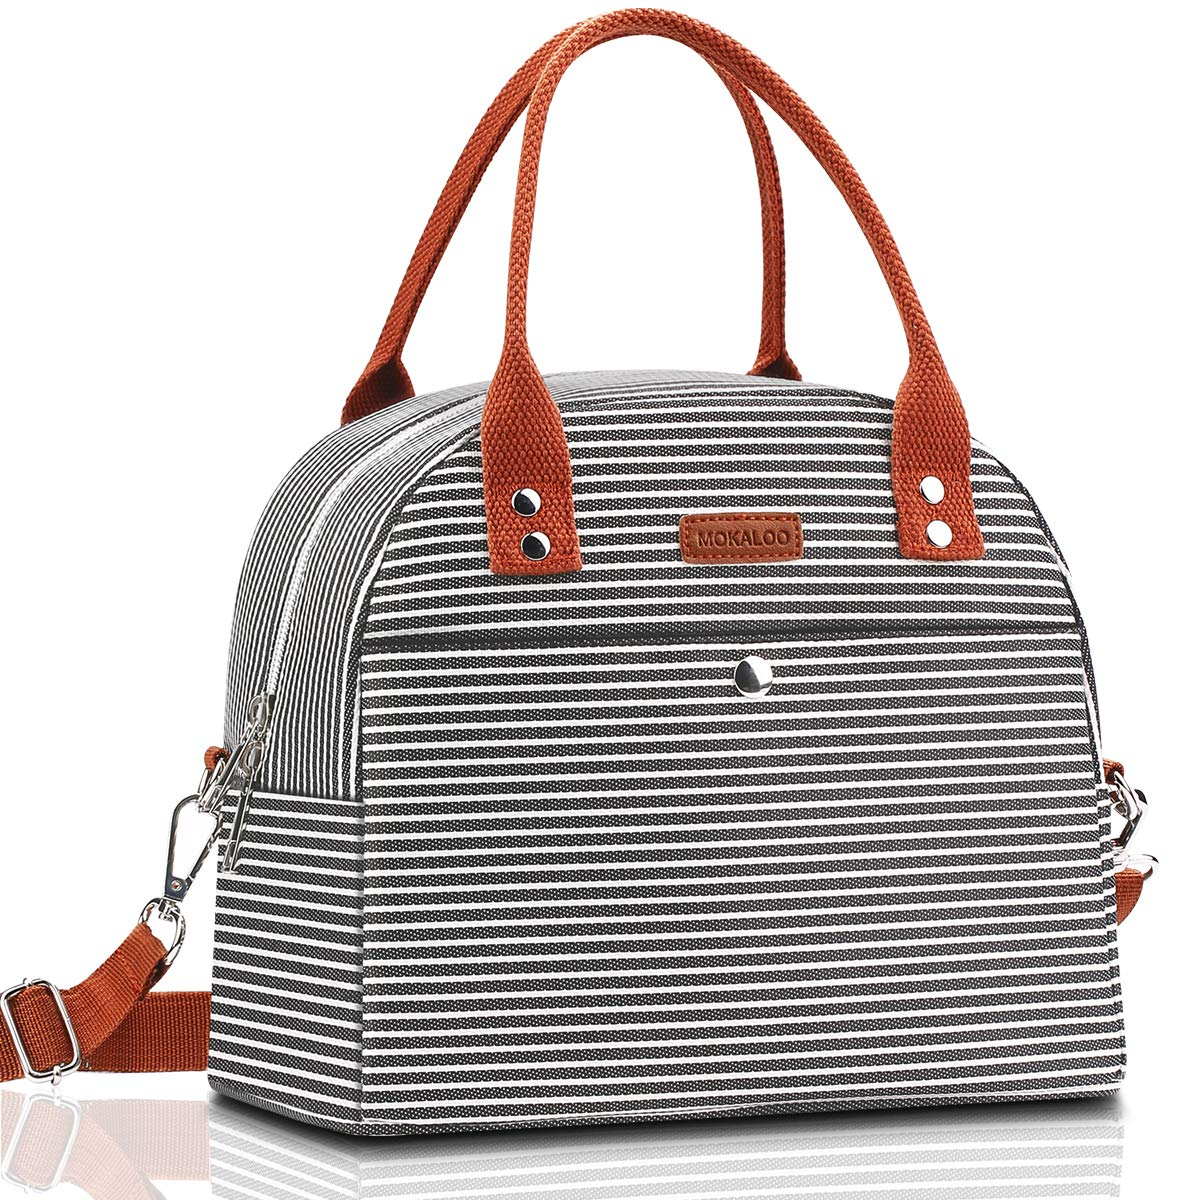 Lunch Bag, Mokaloo Insulated Lunch Box for Women, Multi-functional Lunch Tote Bags with Shoulder Strap, Reusable Thermal Cooler Bag Lunch Container for Women Men Work Picnic, Stripe by Mokaloo